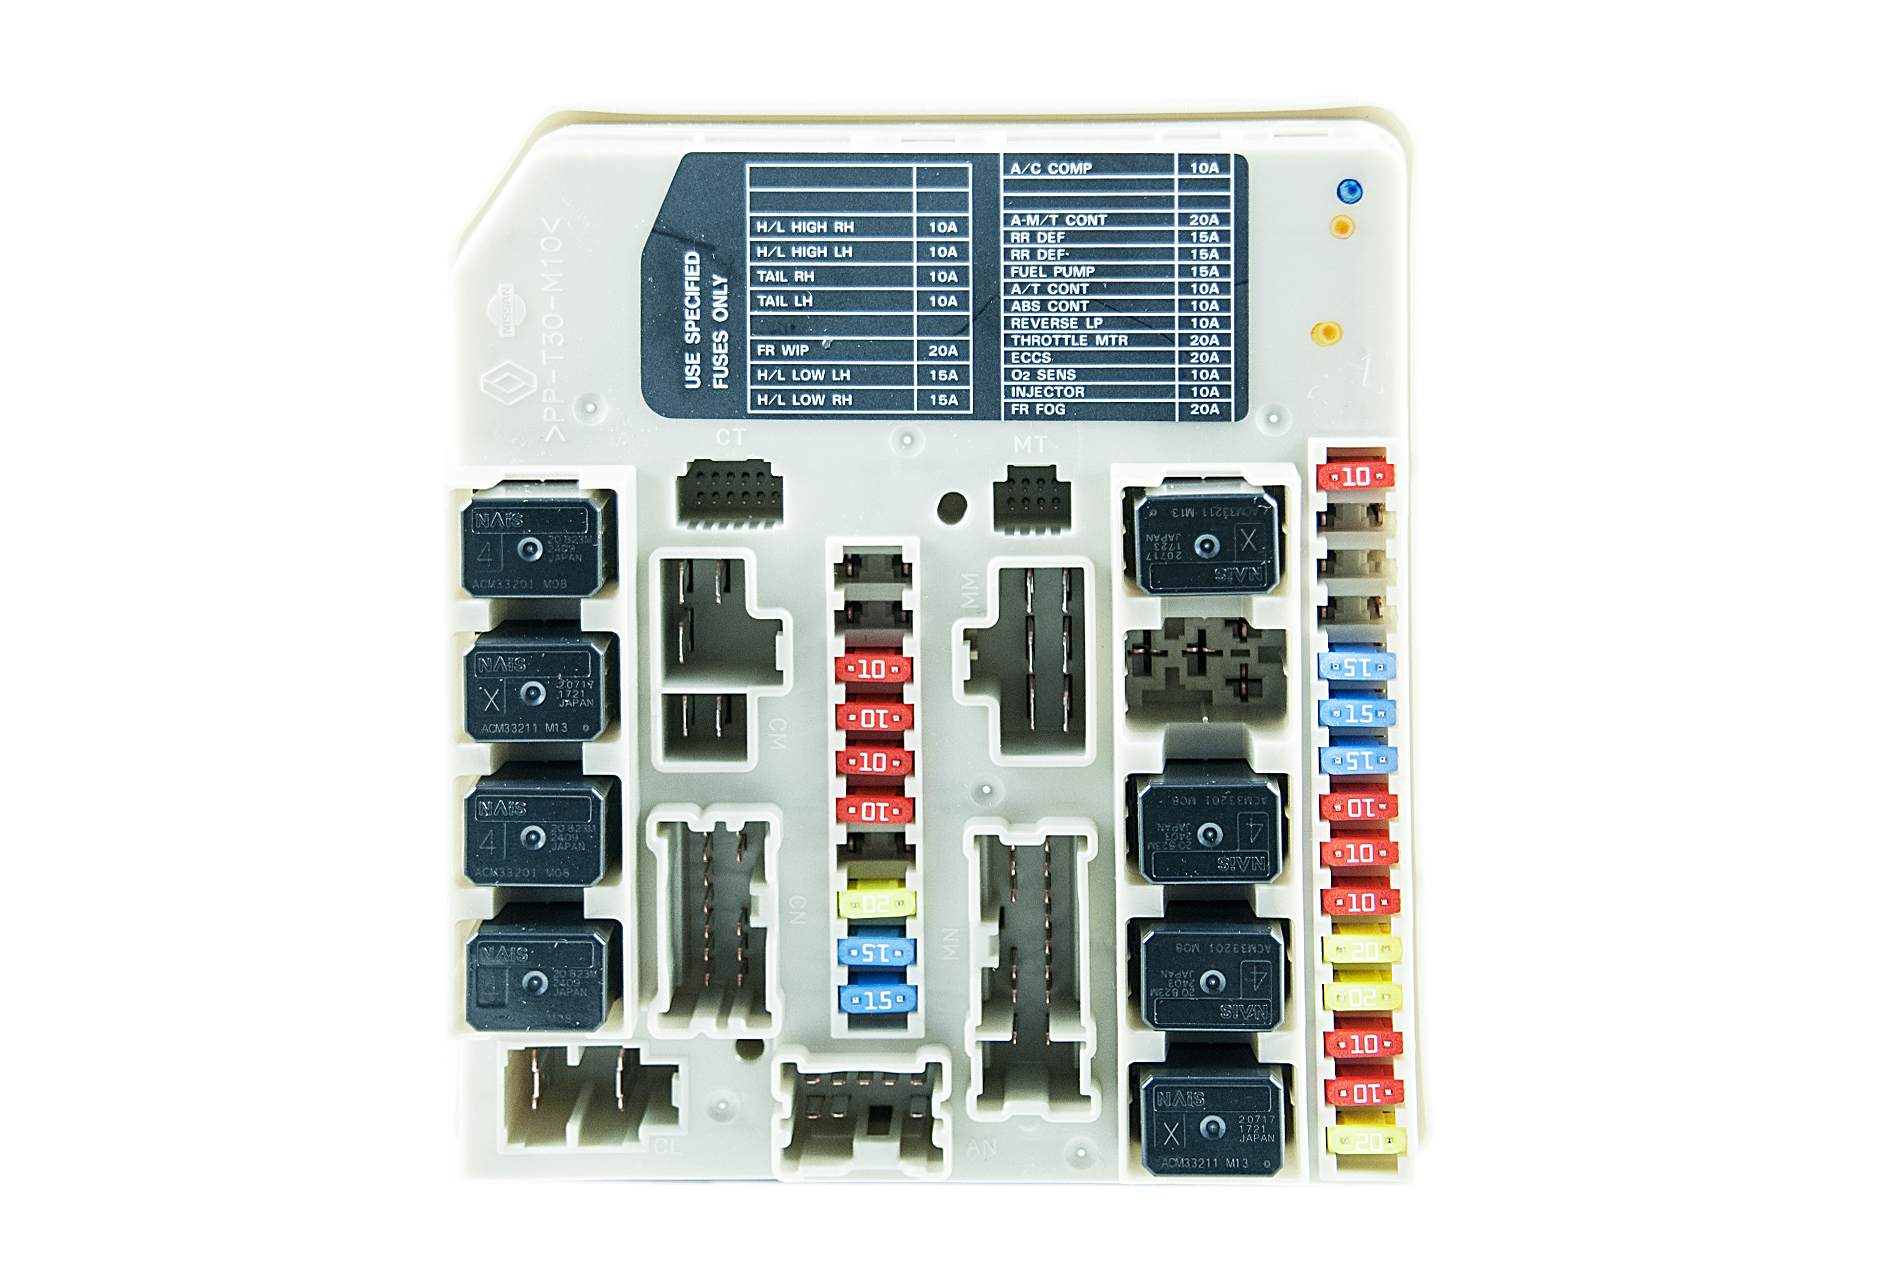 284B7AX61Aa nissan genuine micra note ipdm power distribution module nissan note fuse box layout at eliteediting.co